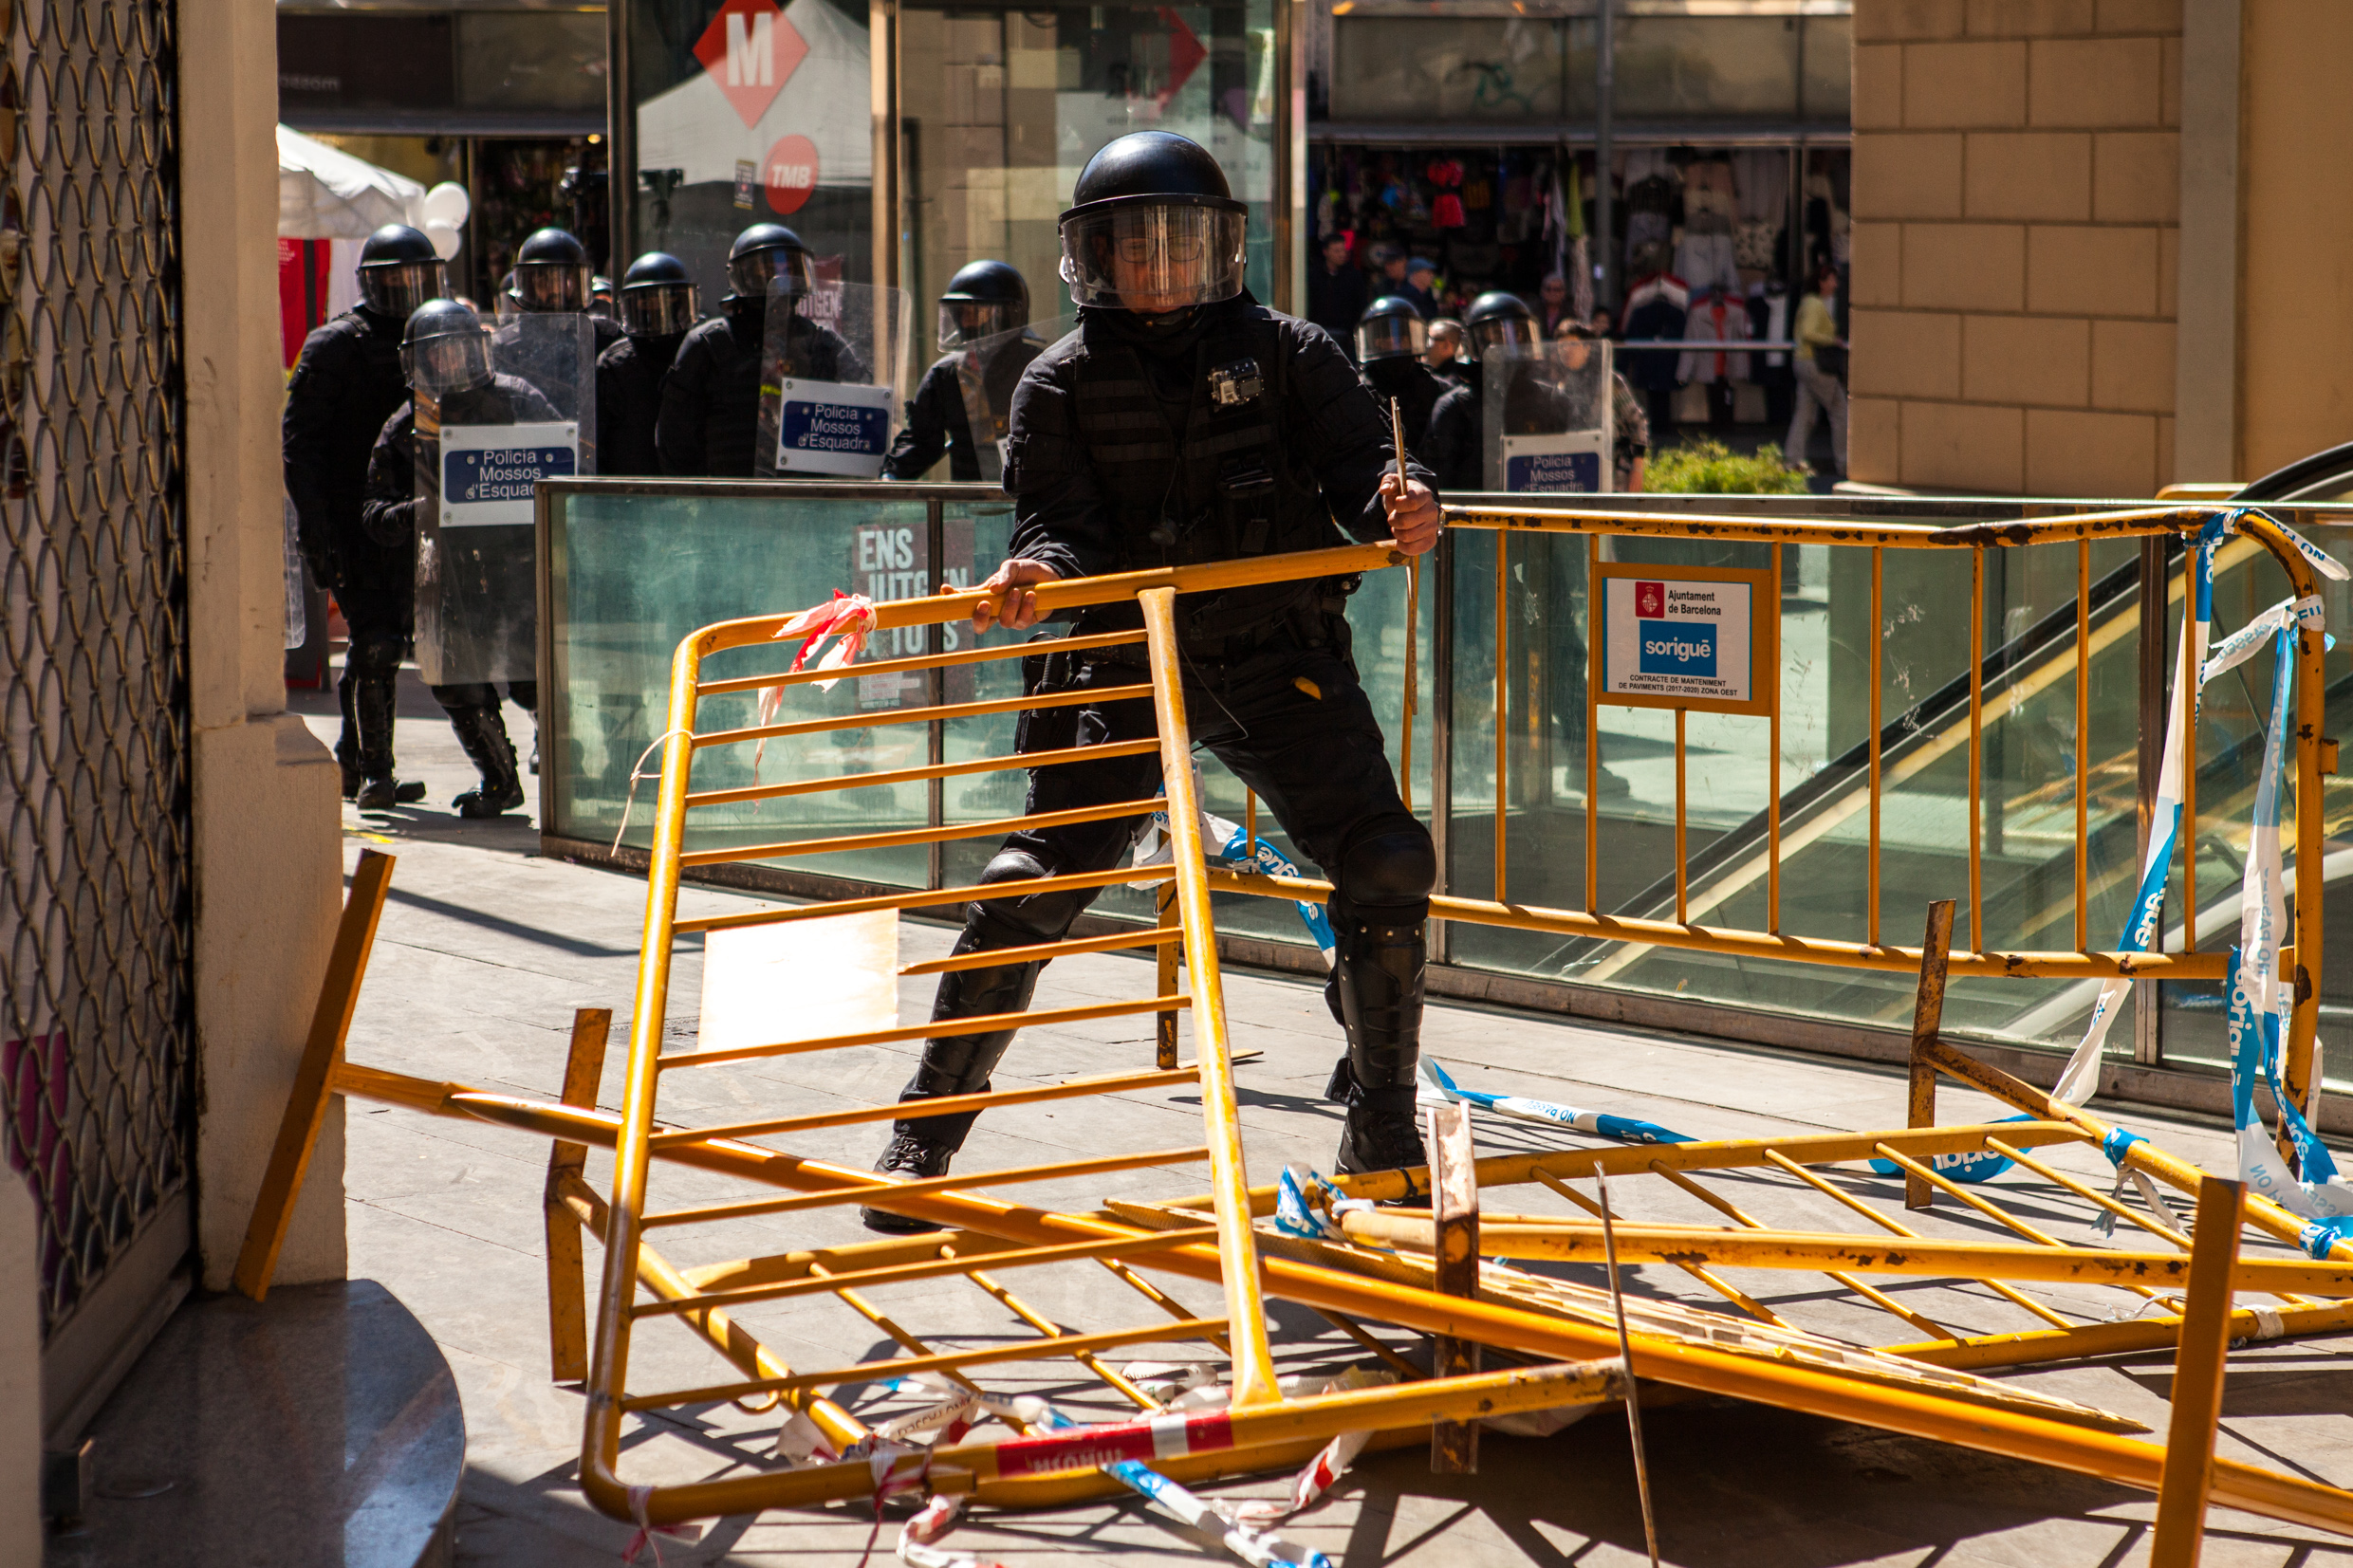 Catalan police cleaning the way from the barricate to charge the antifascist group. Barcelona